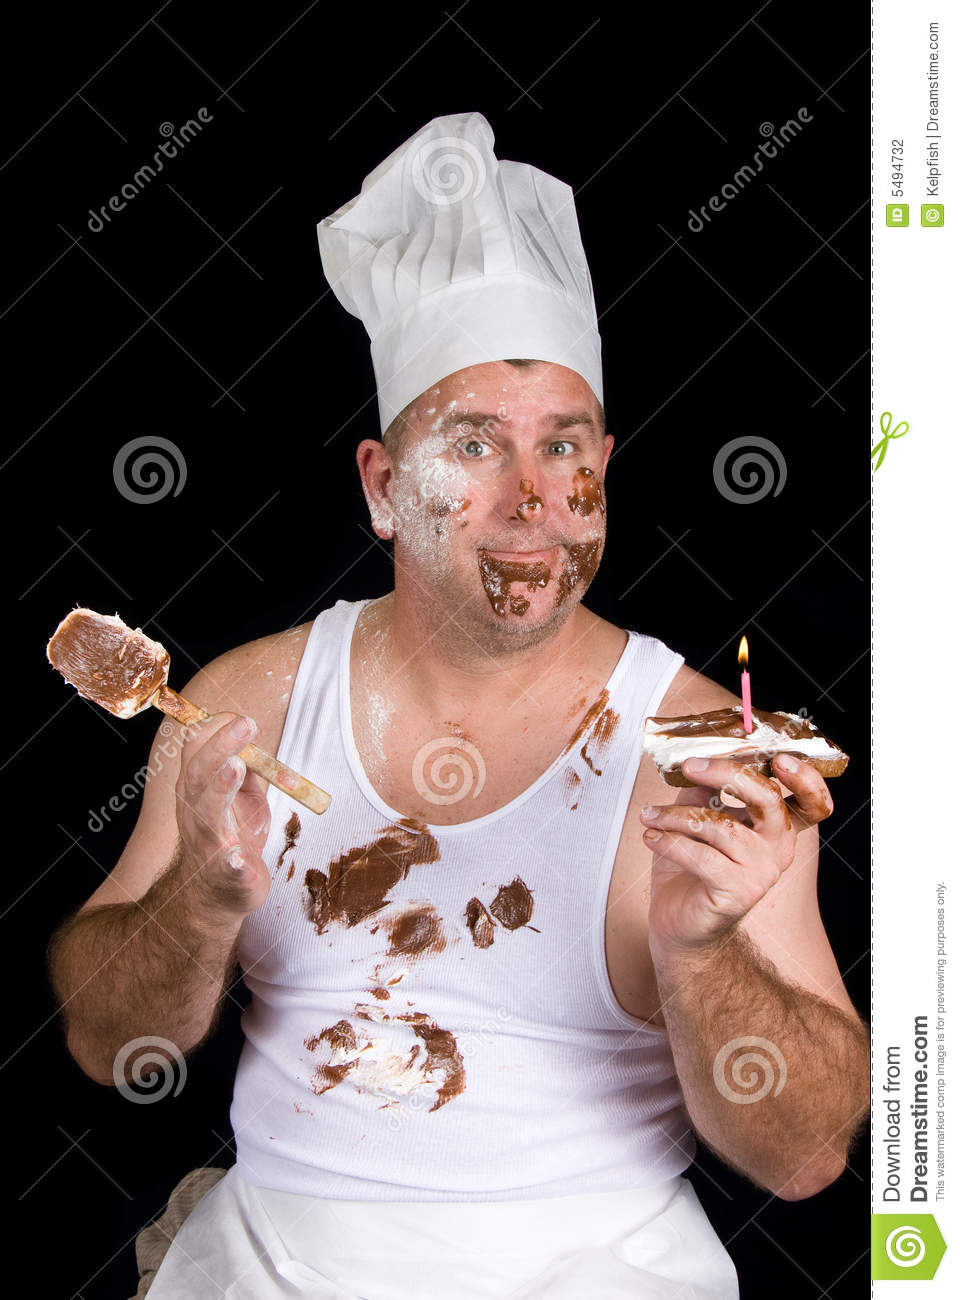 Birthday Chef Stock Photography Image 5494732